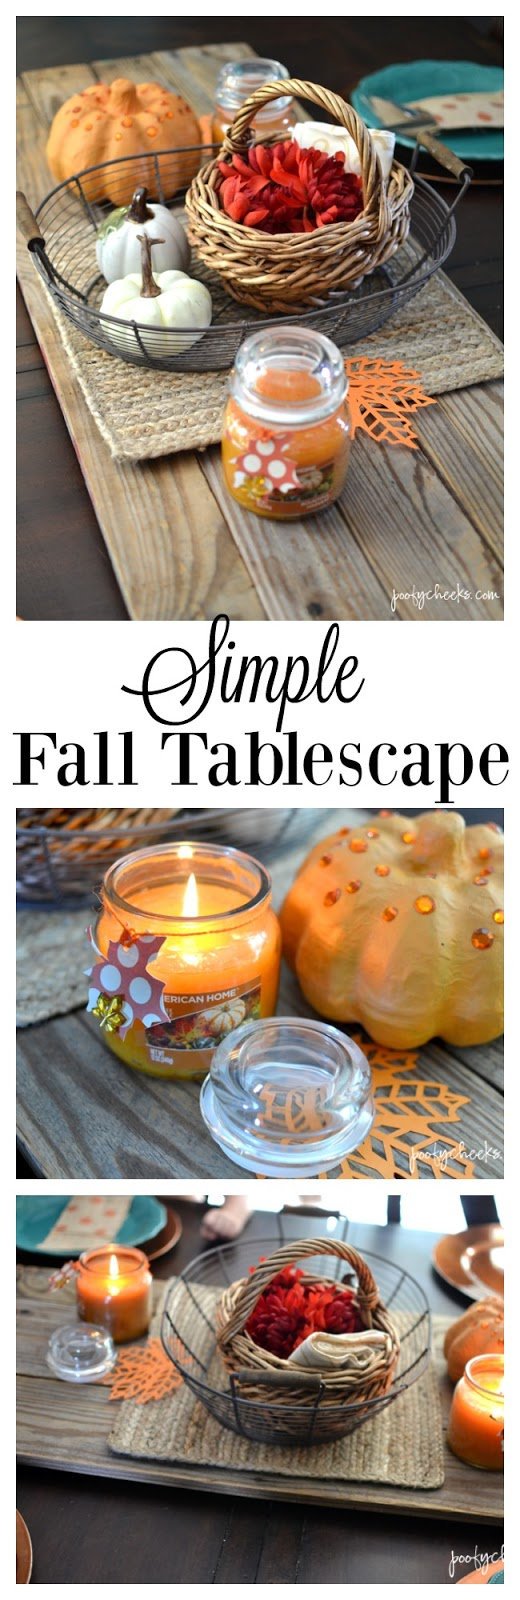 A Simple Fall Tablescape complete with Fall Fragrances